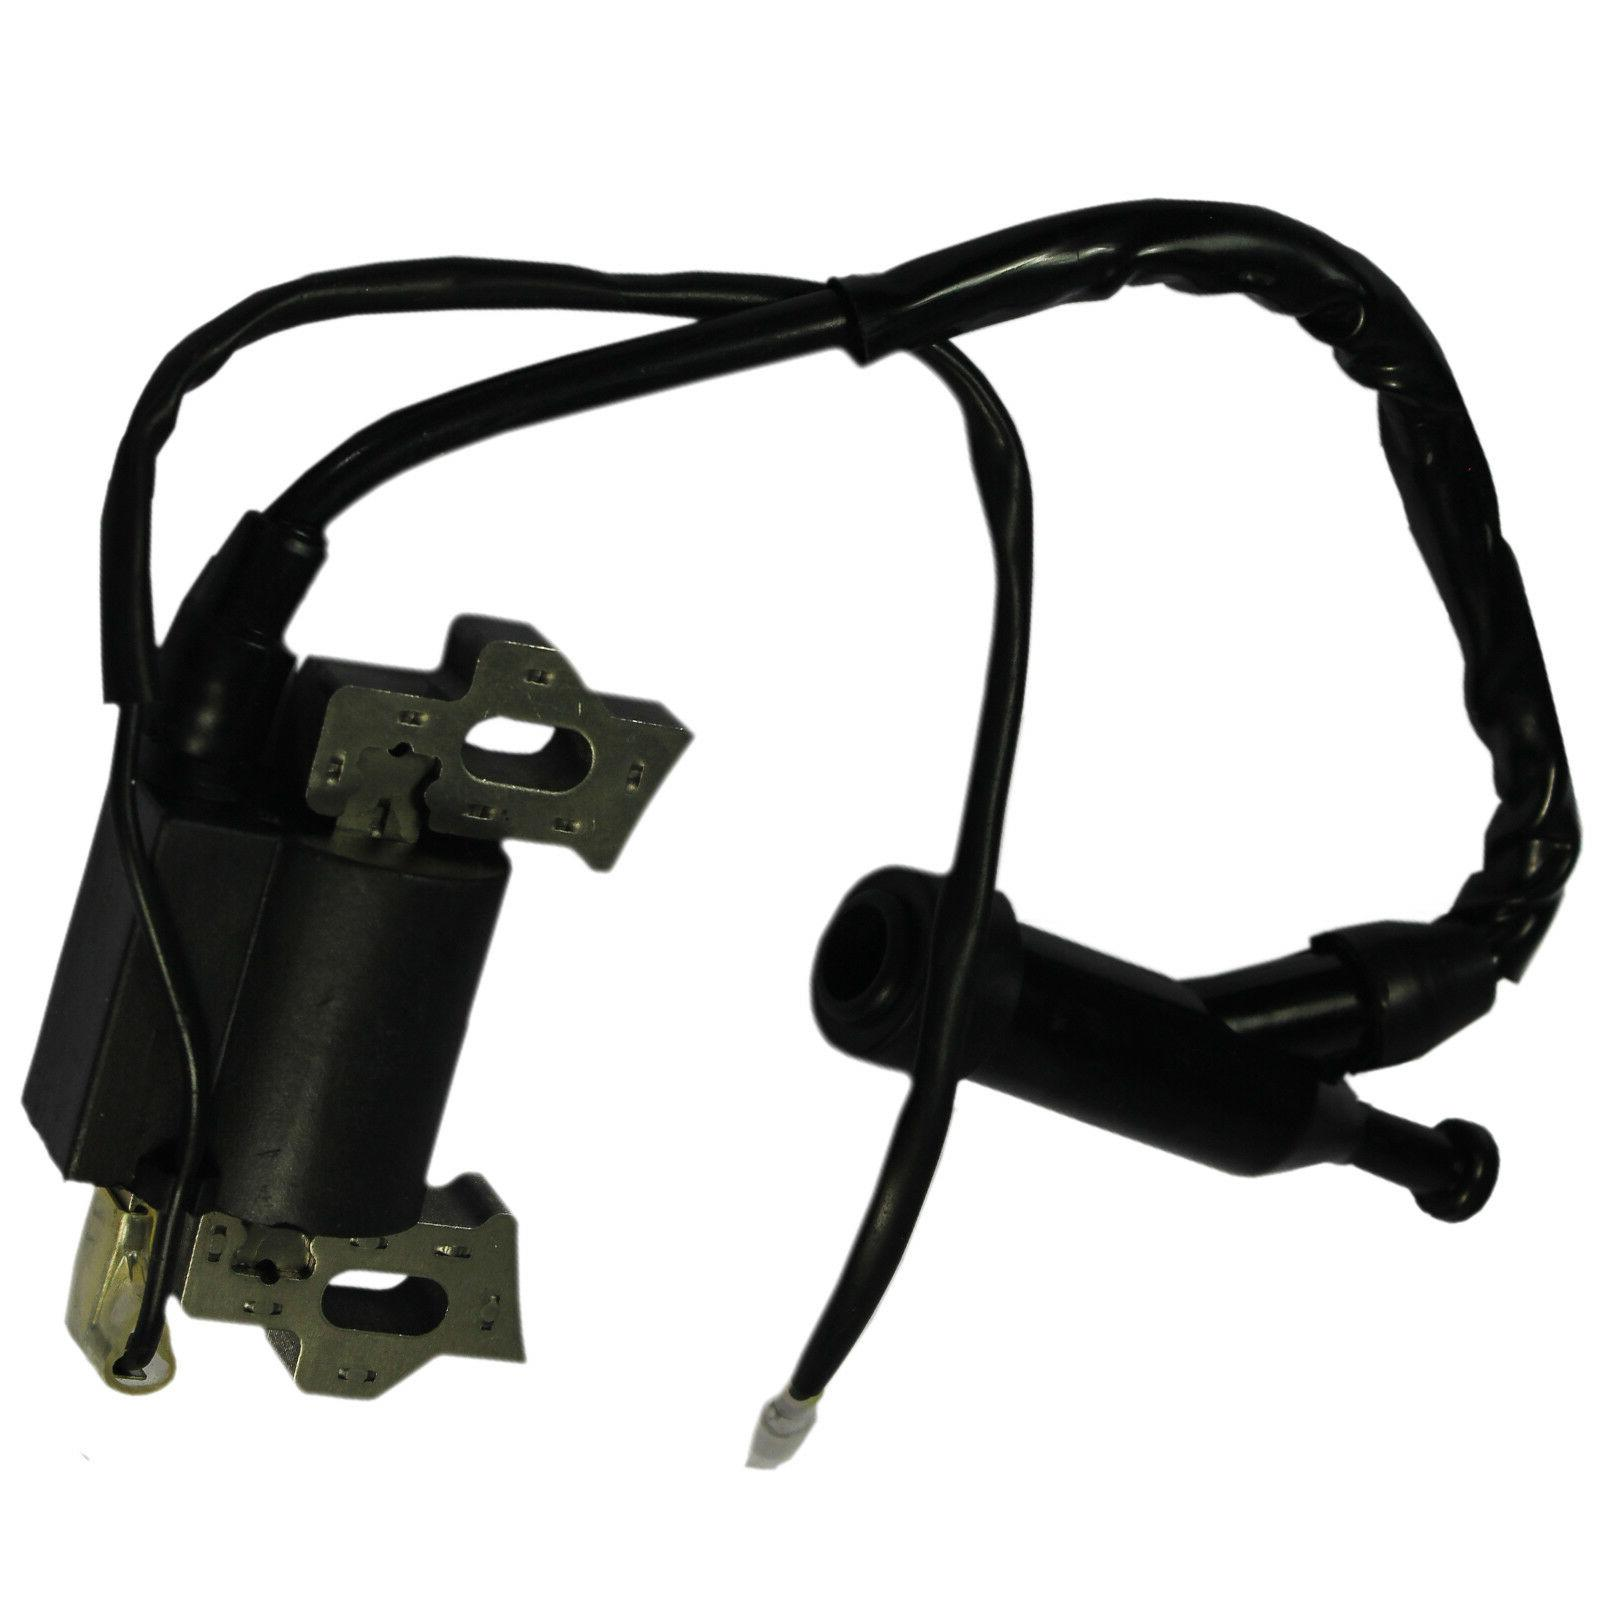 Magneto Parts Ignition Coil For Honda 5.5HP/GX200